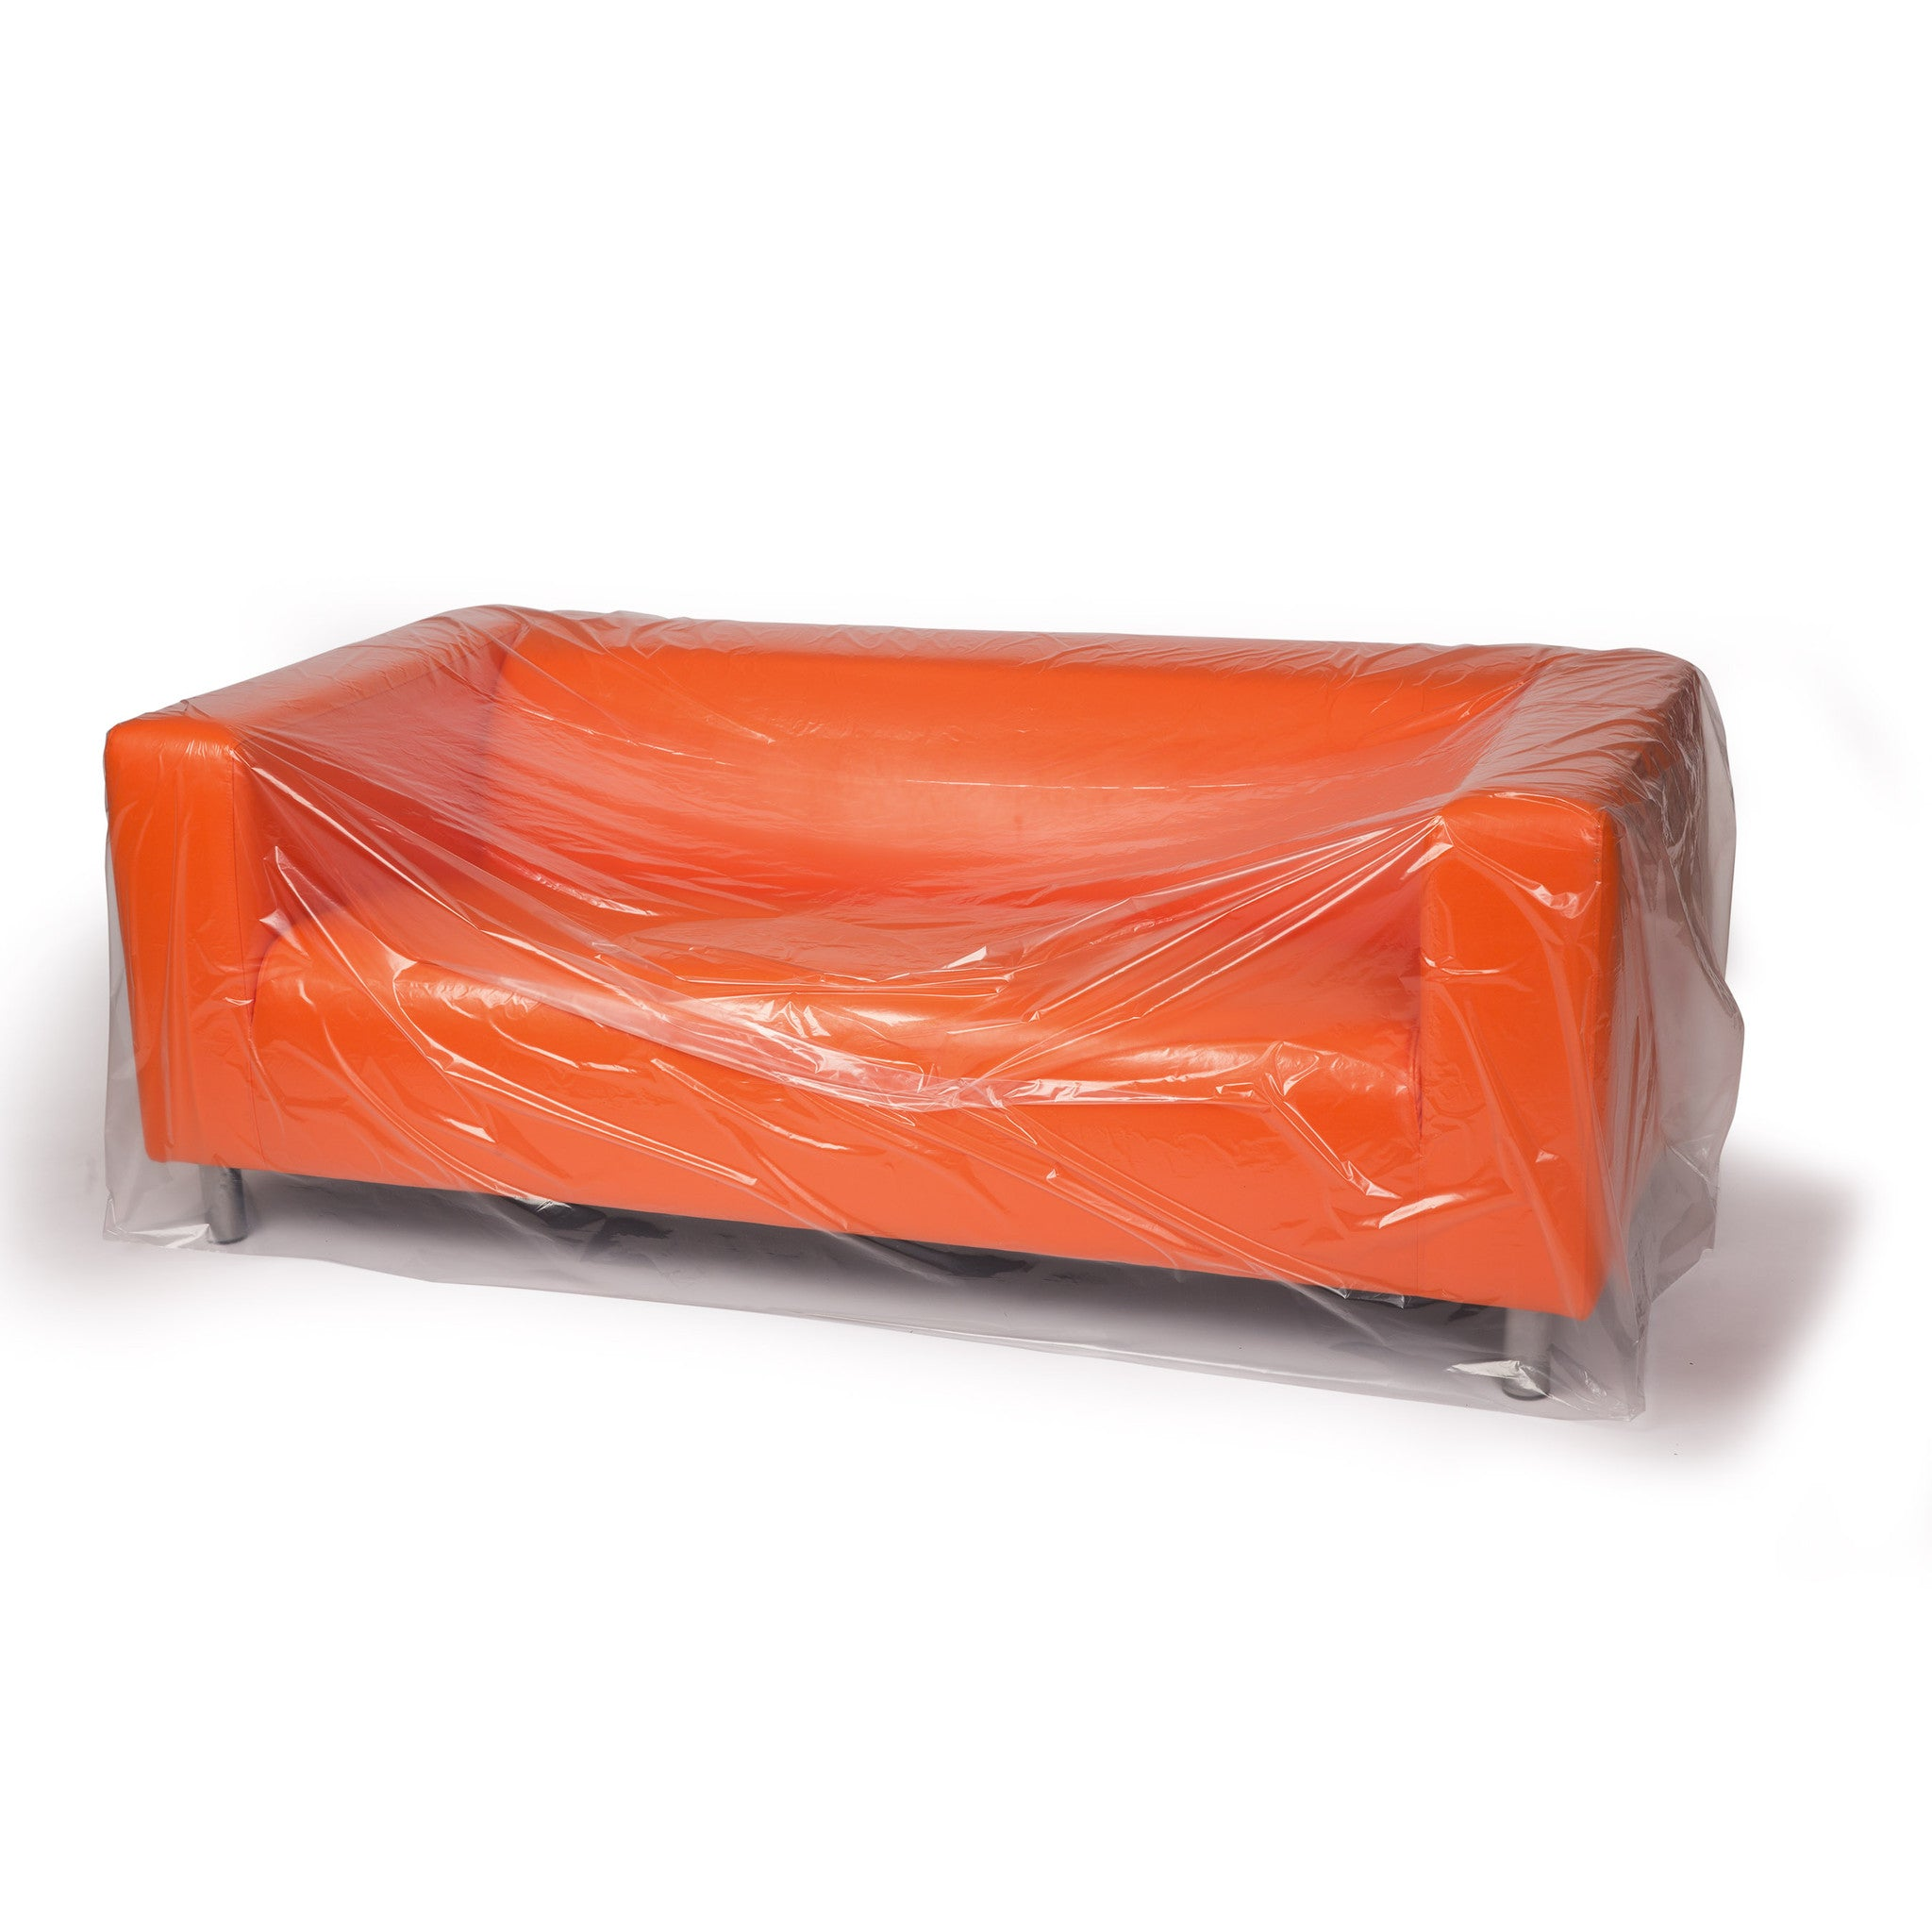 4Mil Clear Sofa Cover Plastic Furniture Protector High Quality